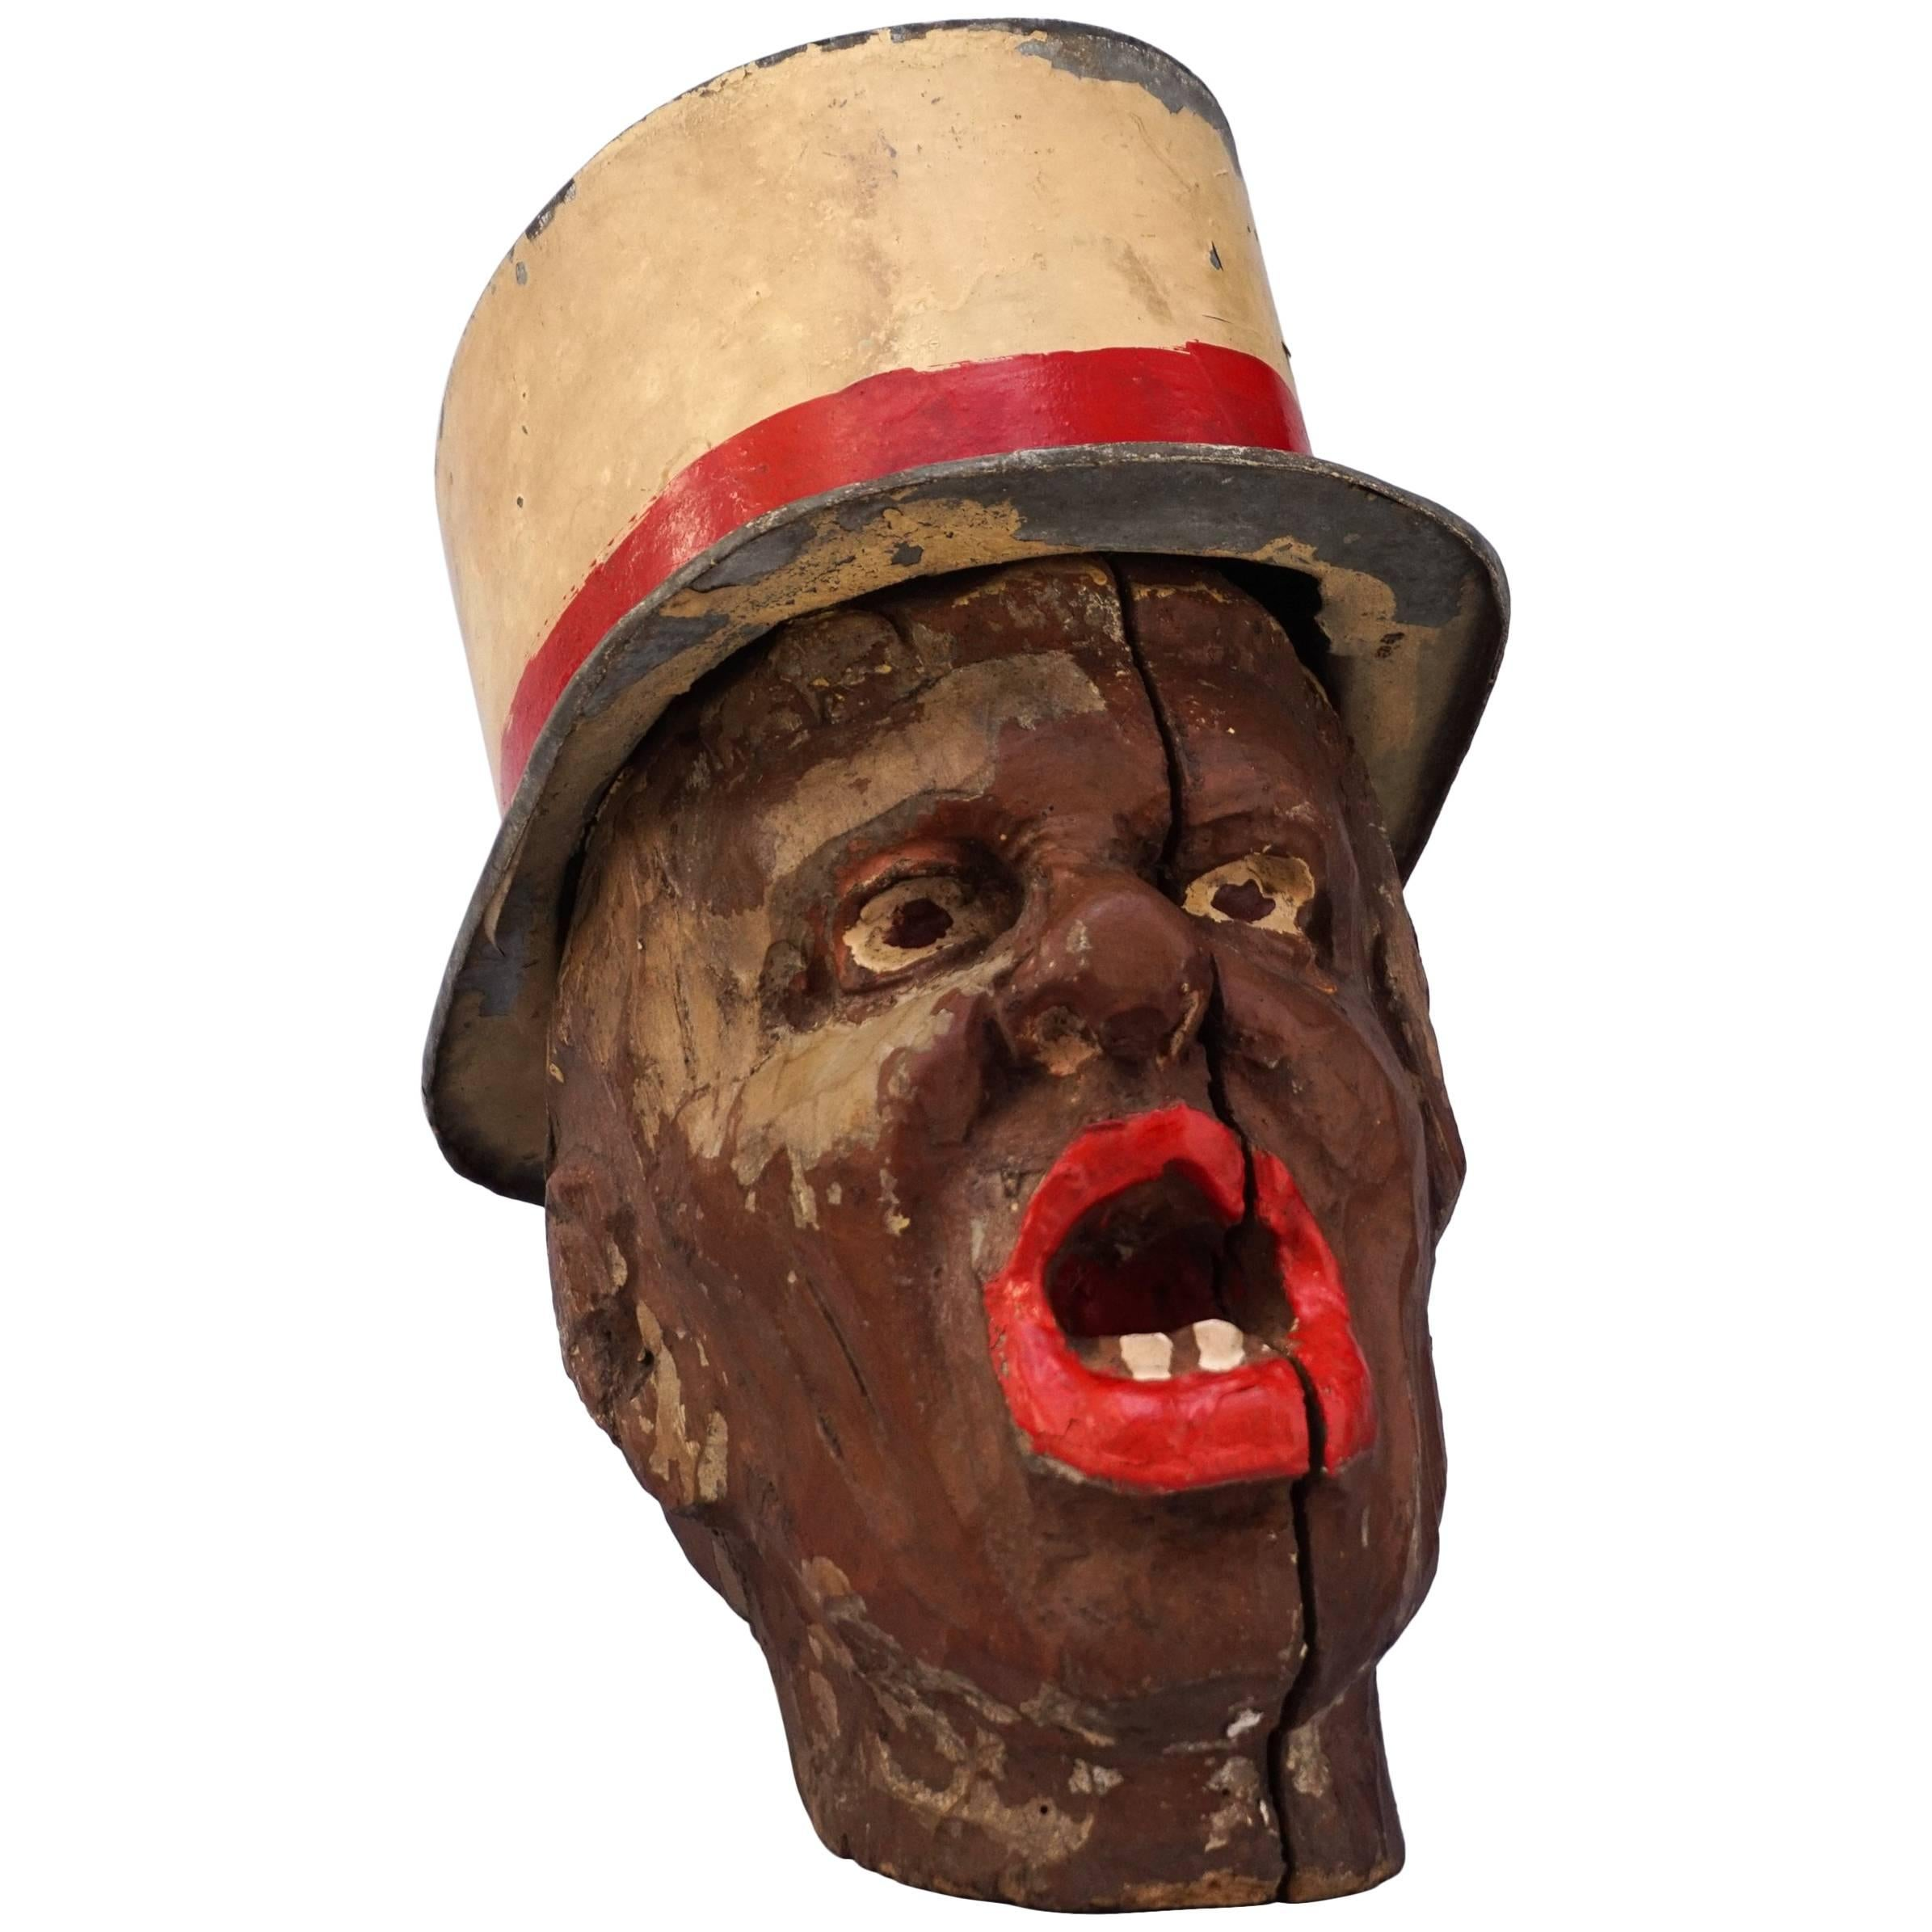 19th Century Carnival Folk Art Carved Wooden Head with Zinc Hat